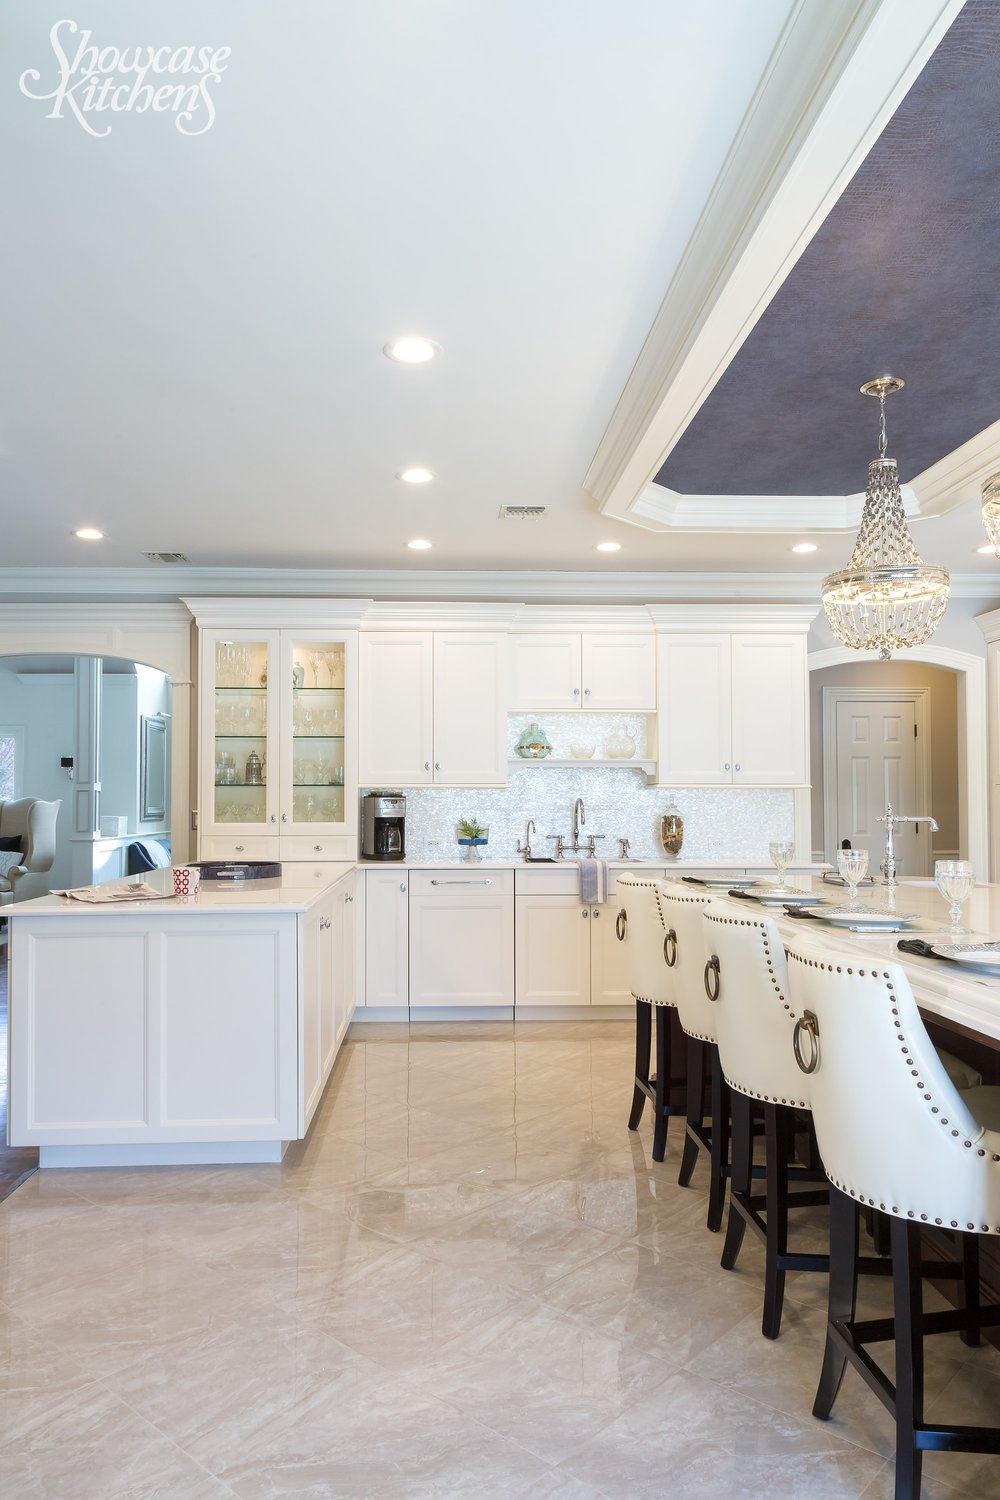 Transitional style kitchen with spacious floor and an open plan design